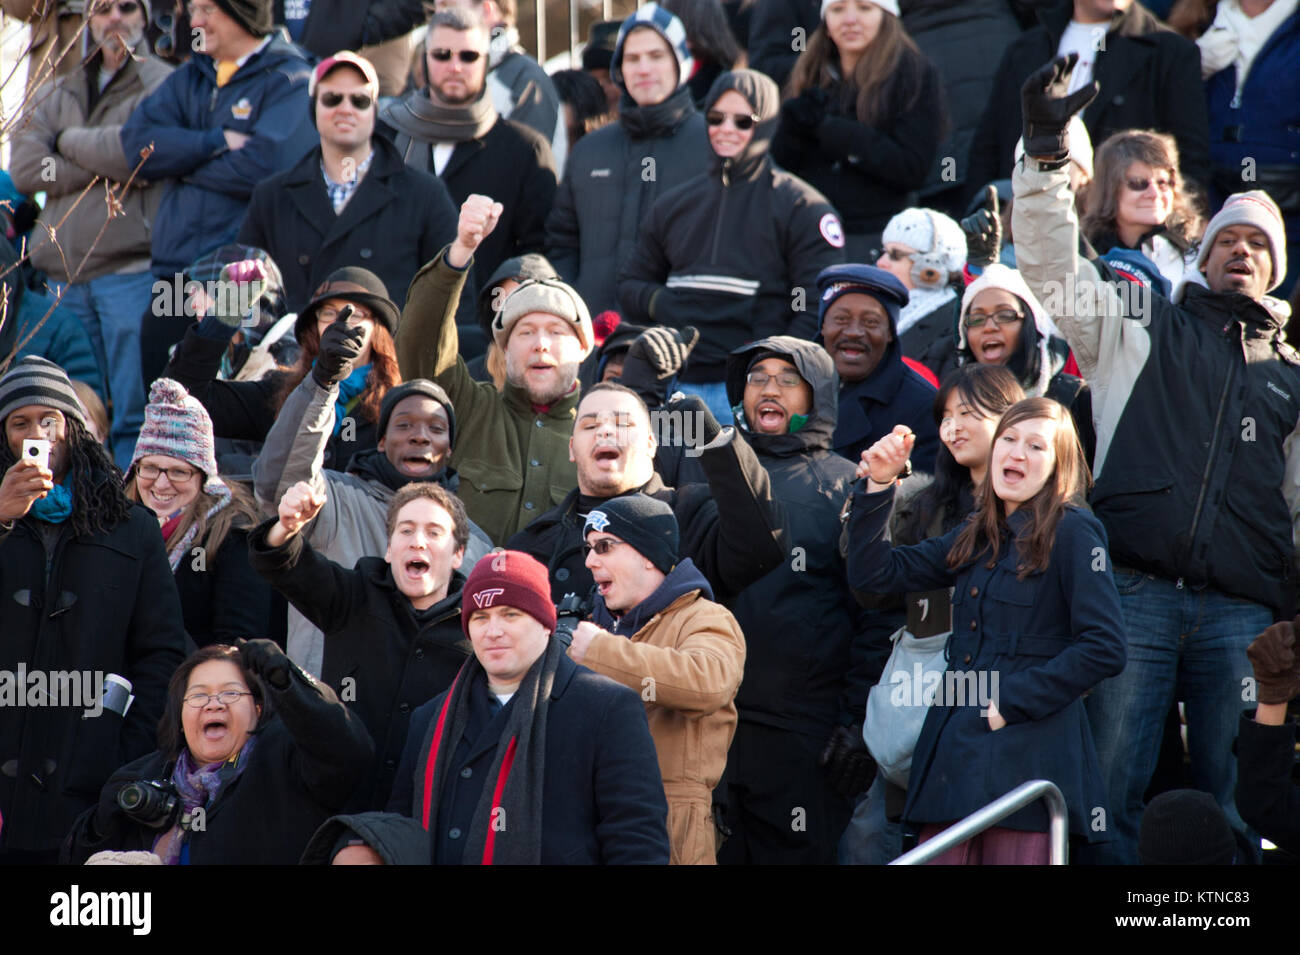 WASHINGTON, D.C. — – Parade-goers celebrate as they wait for President Barack Obama to pass the official review Stock Photo